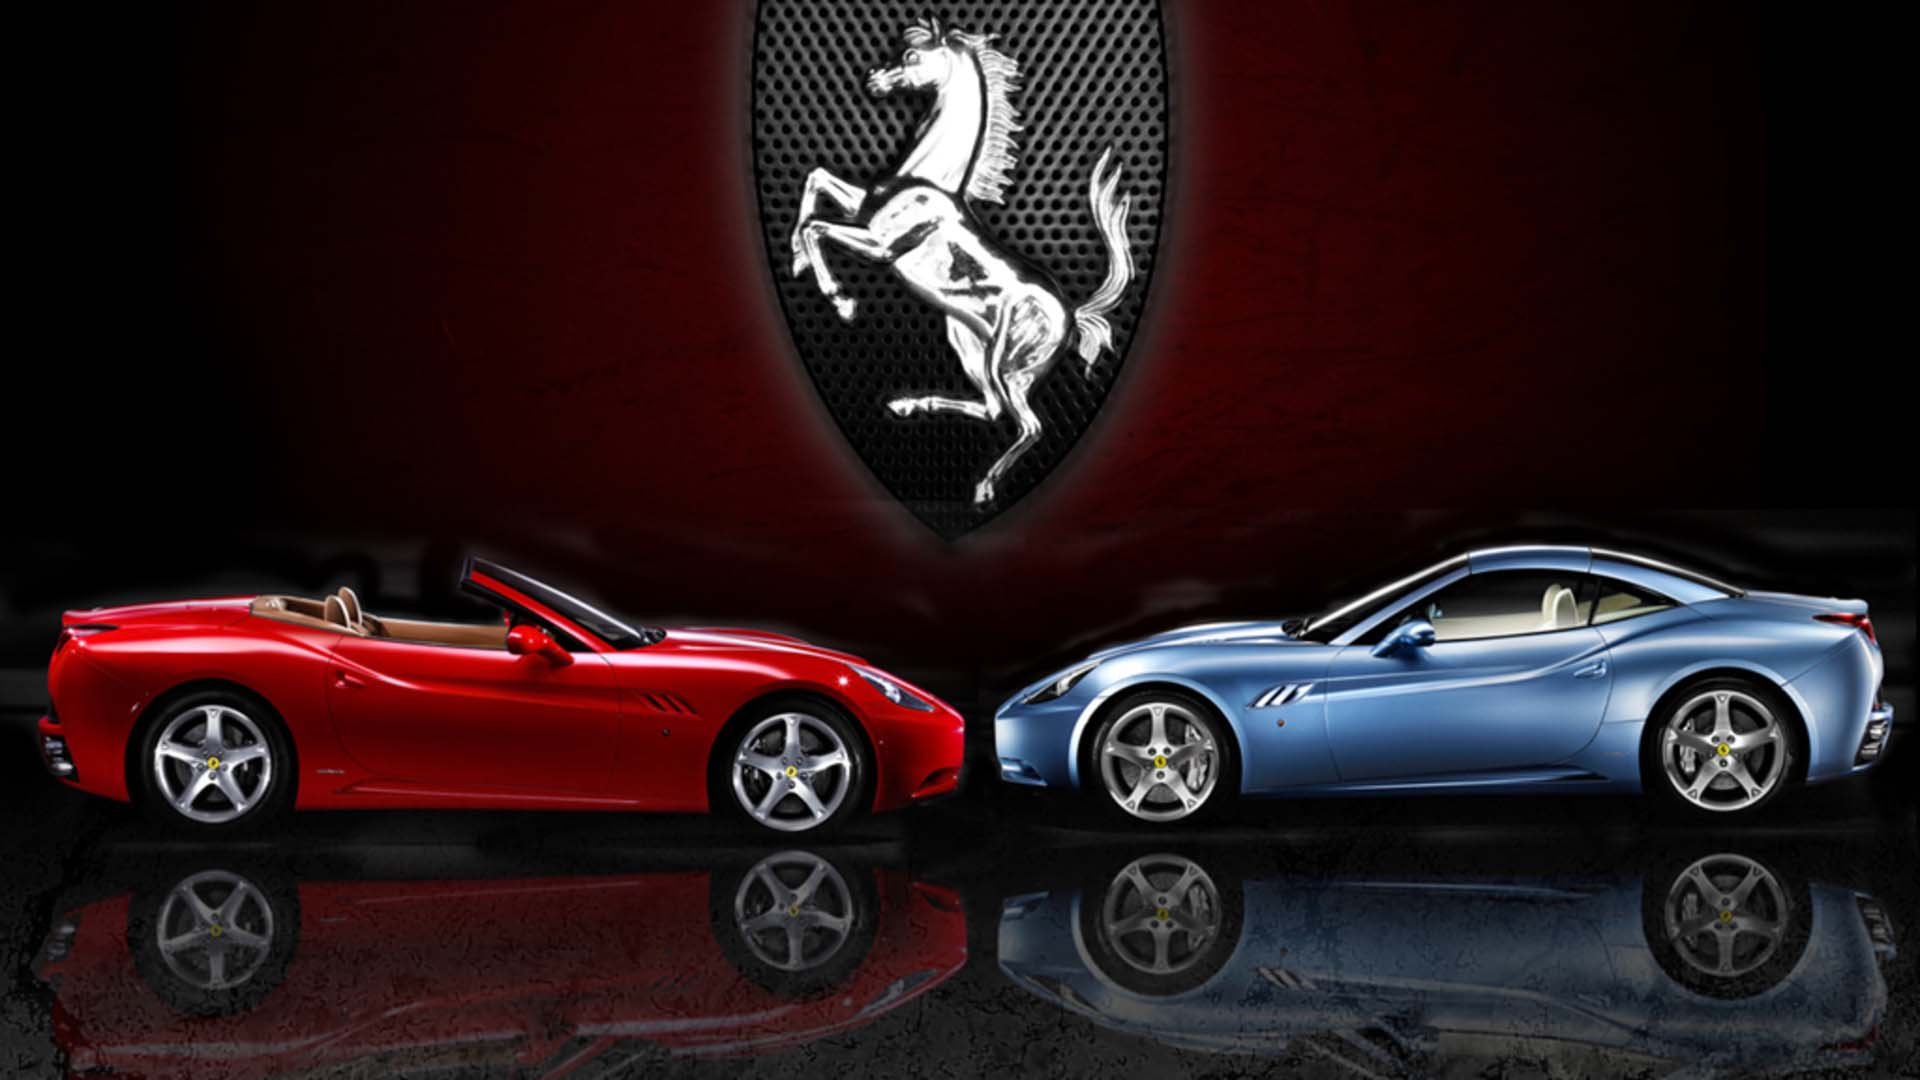 Best Background Check >> 42 HD Ferrari Wallpapers For Free Download